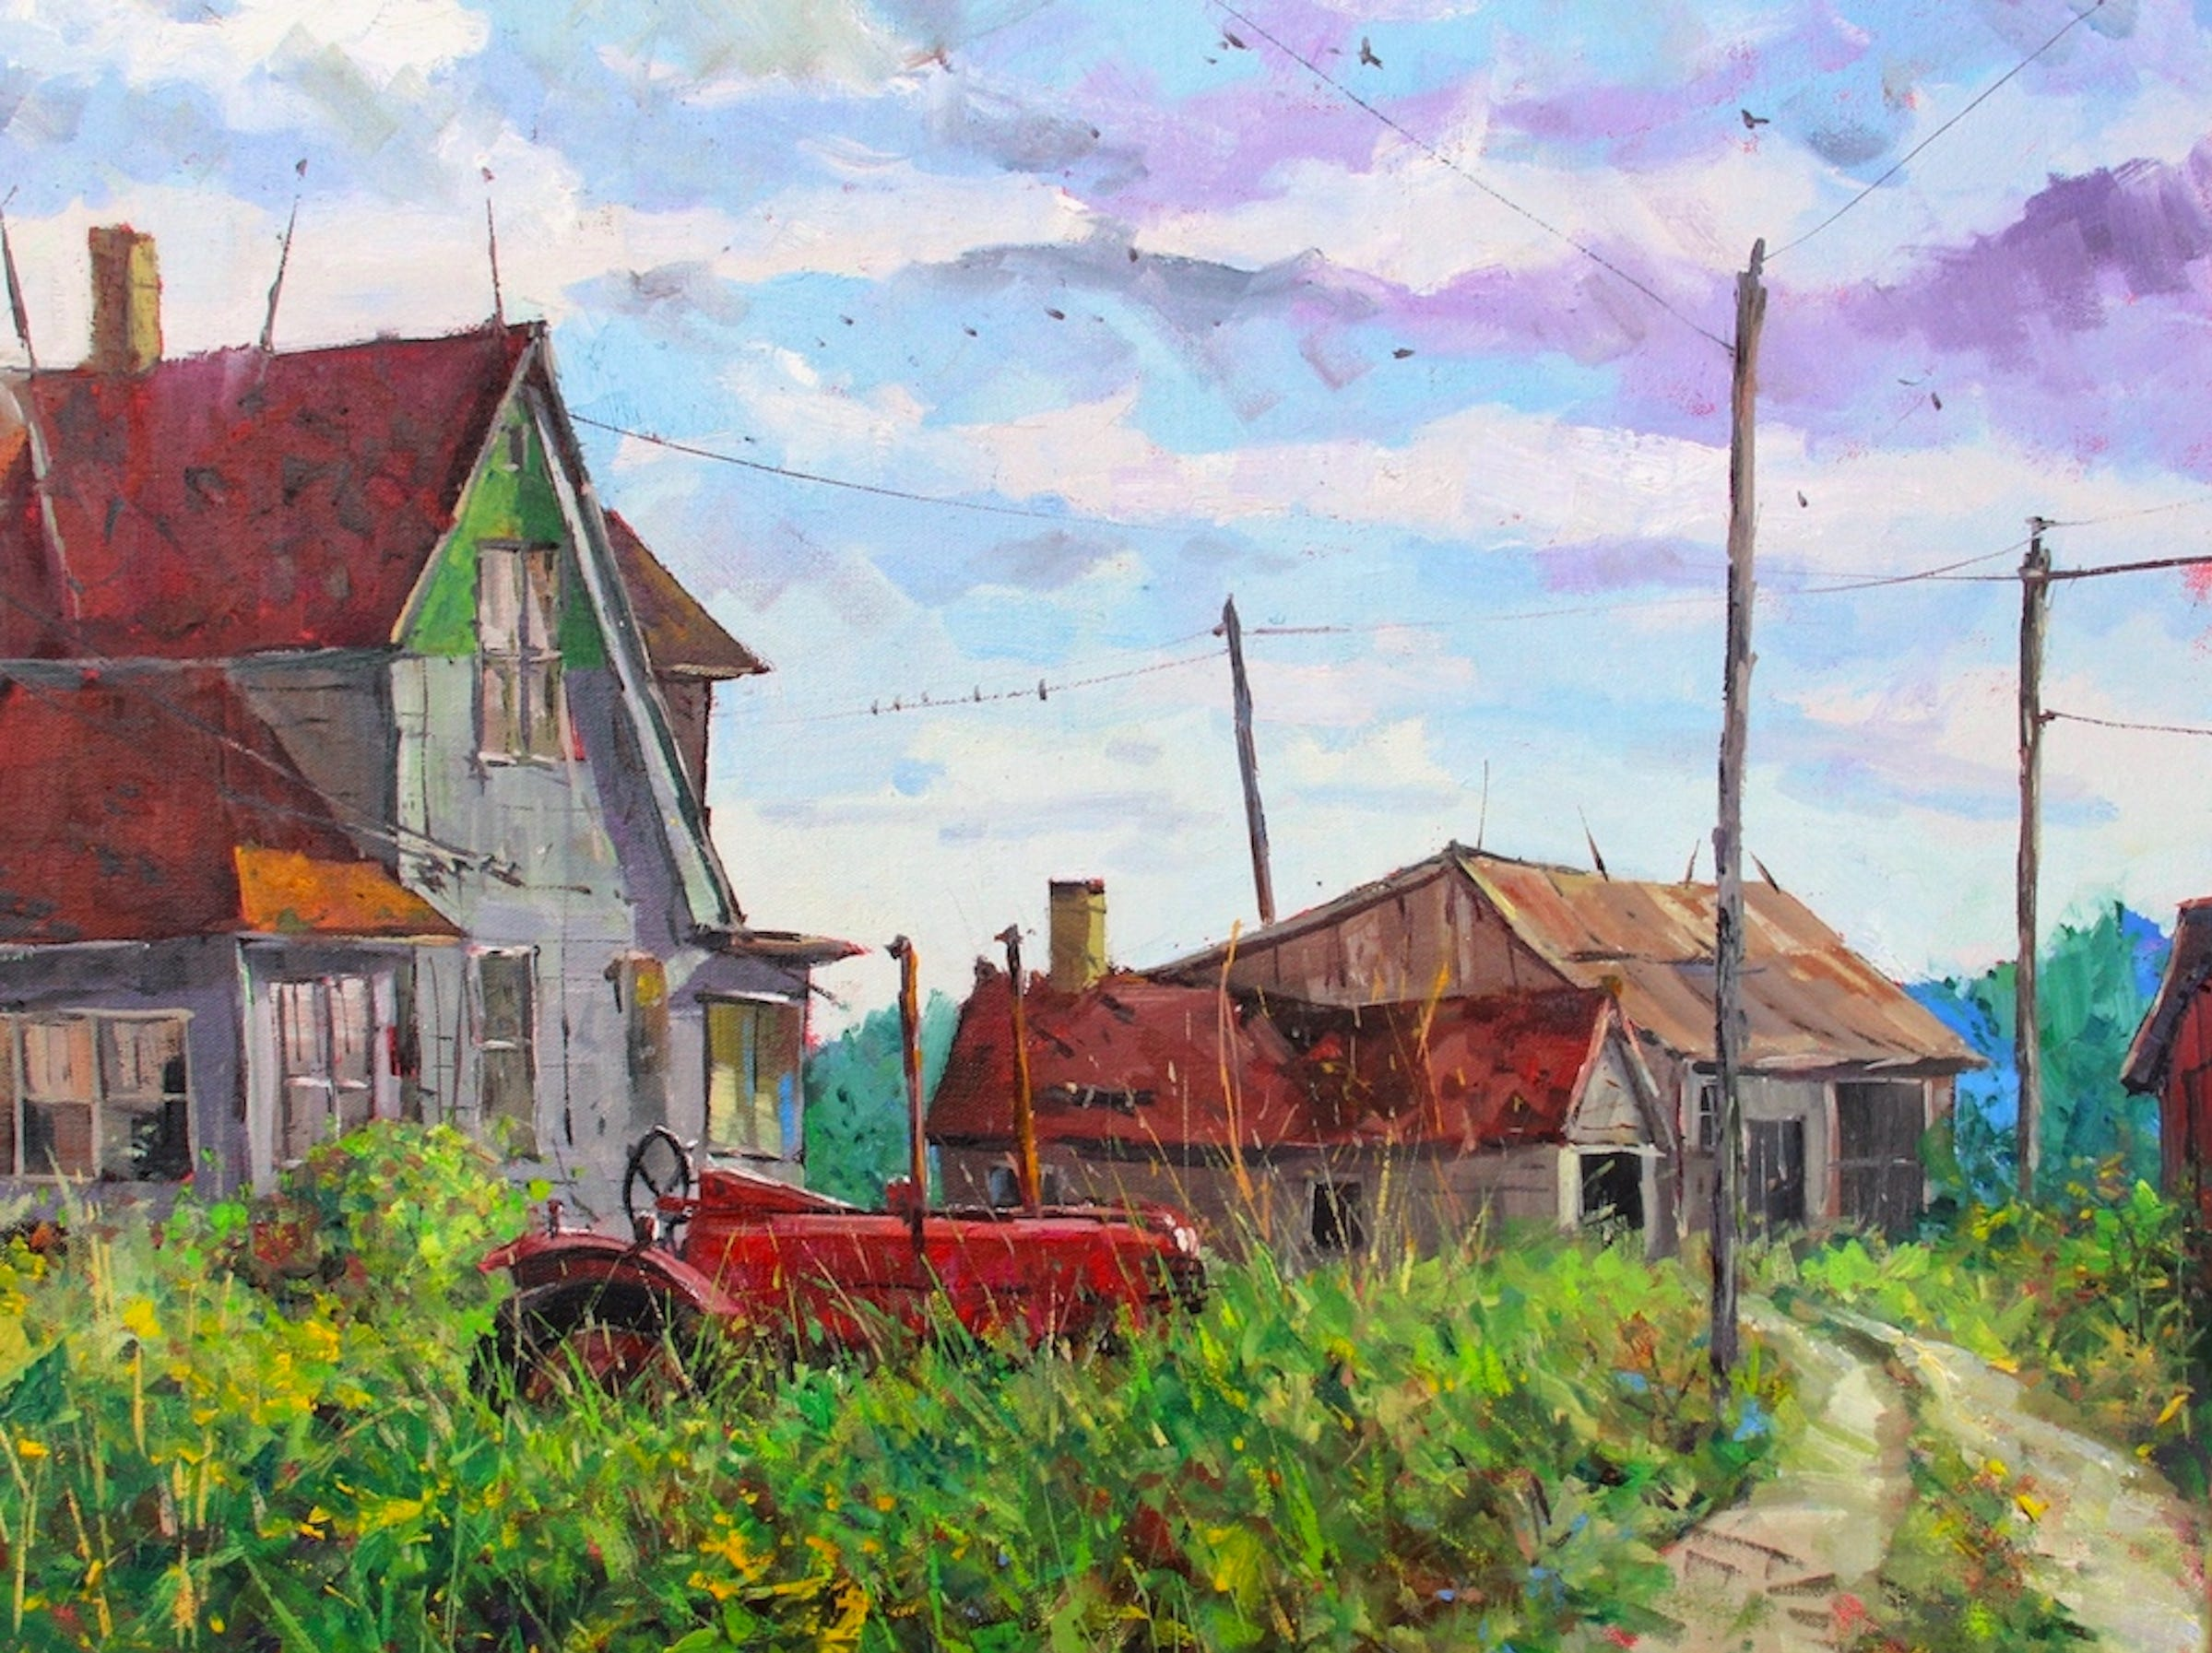 'Ed's Tractor' by Manitowoc artist Bob Beck.